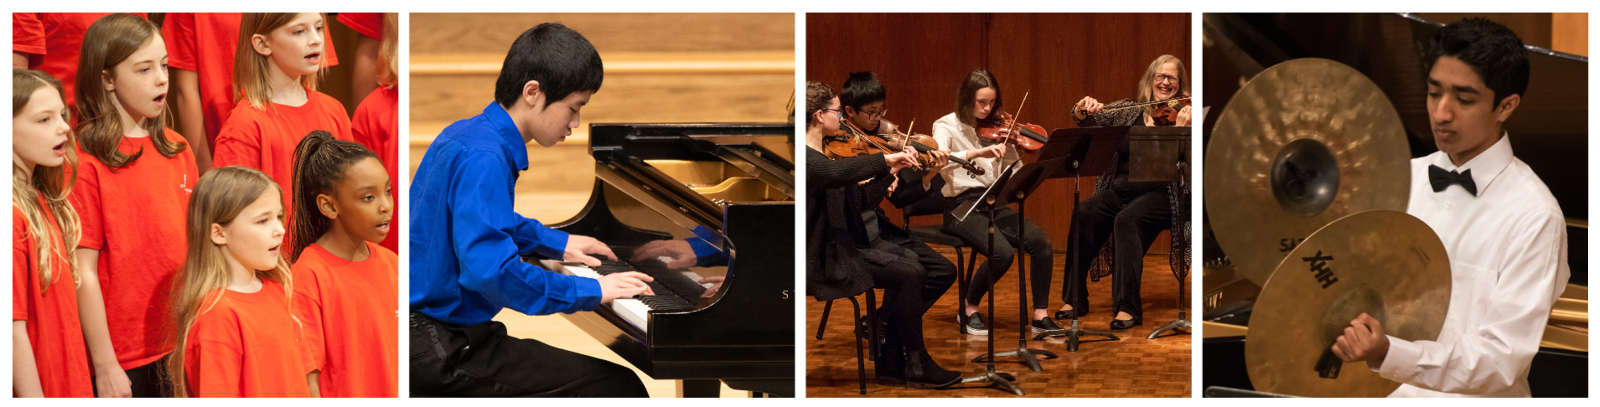 Four photos: the Ragazze Girl Choir singing on stage, a student playing piano at the Honors Recital, students and their instructor playing on stage at a chamber ensembles concert, a student crashing cymbals at a band concert